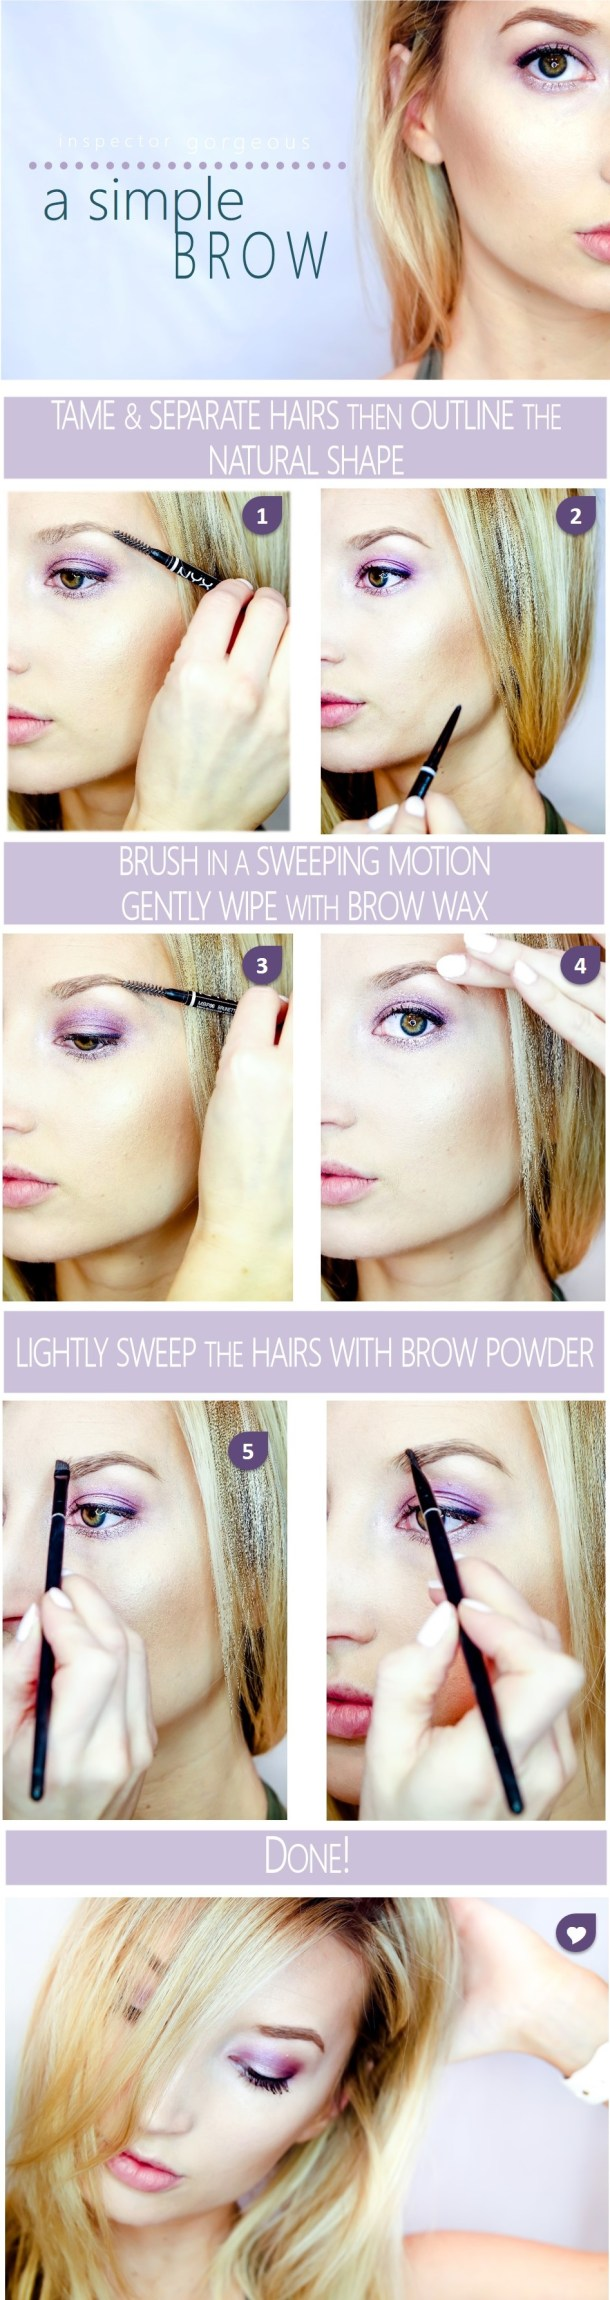 Simple Brow Tutorial